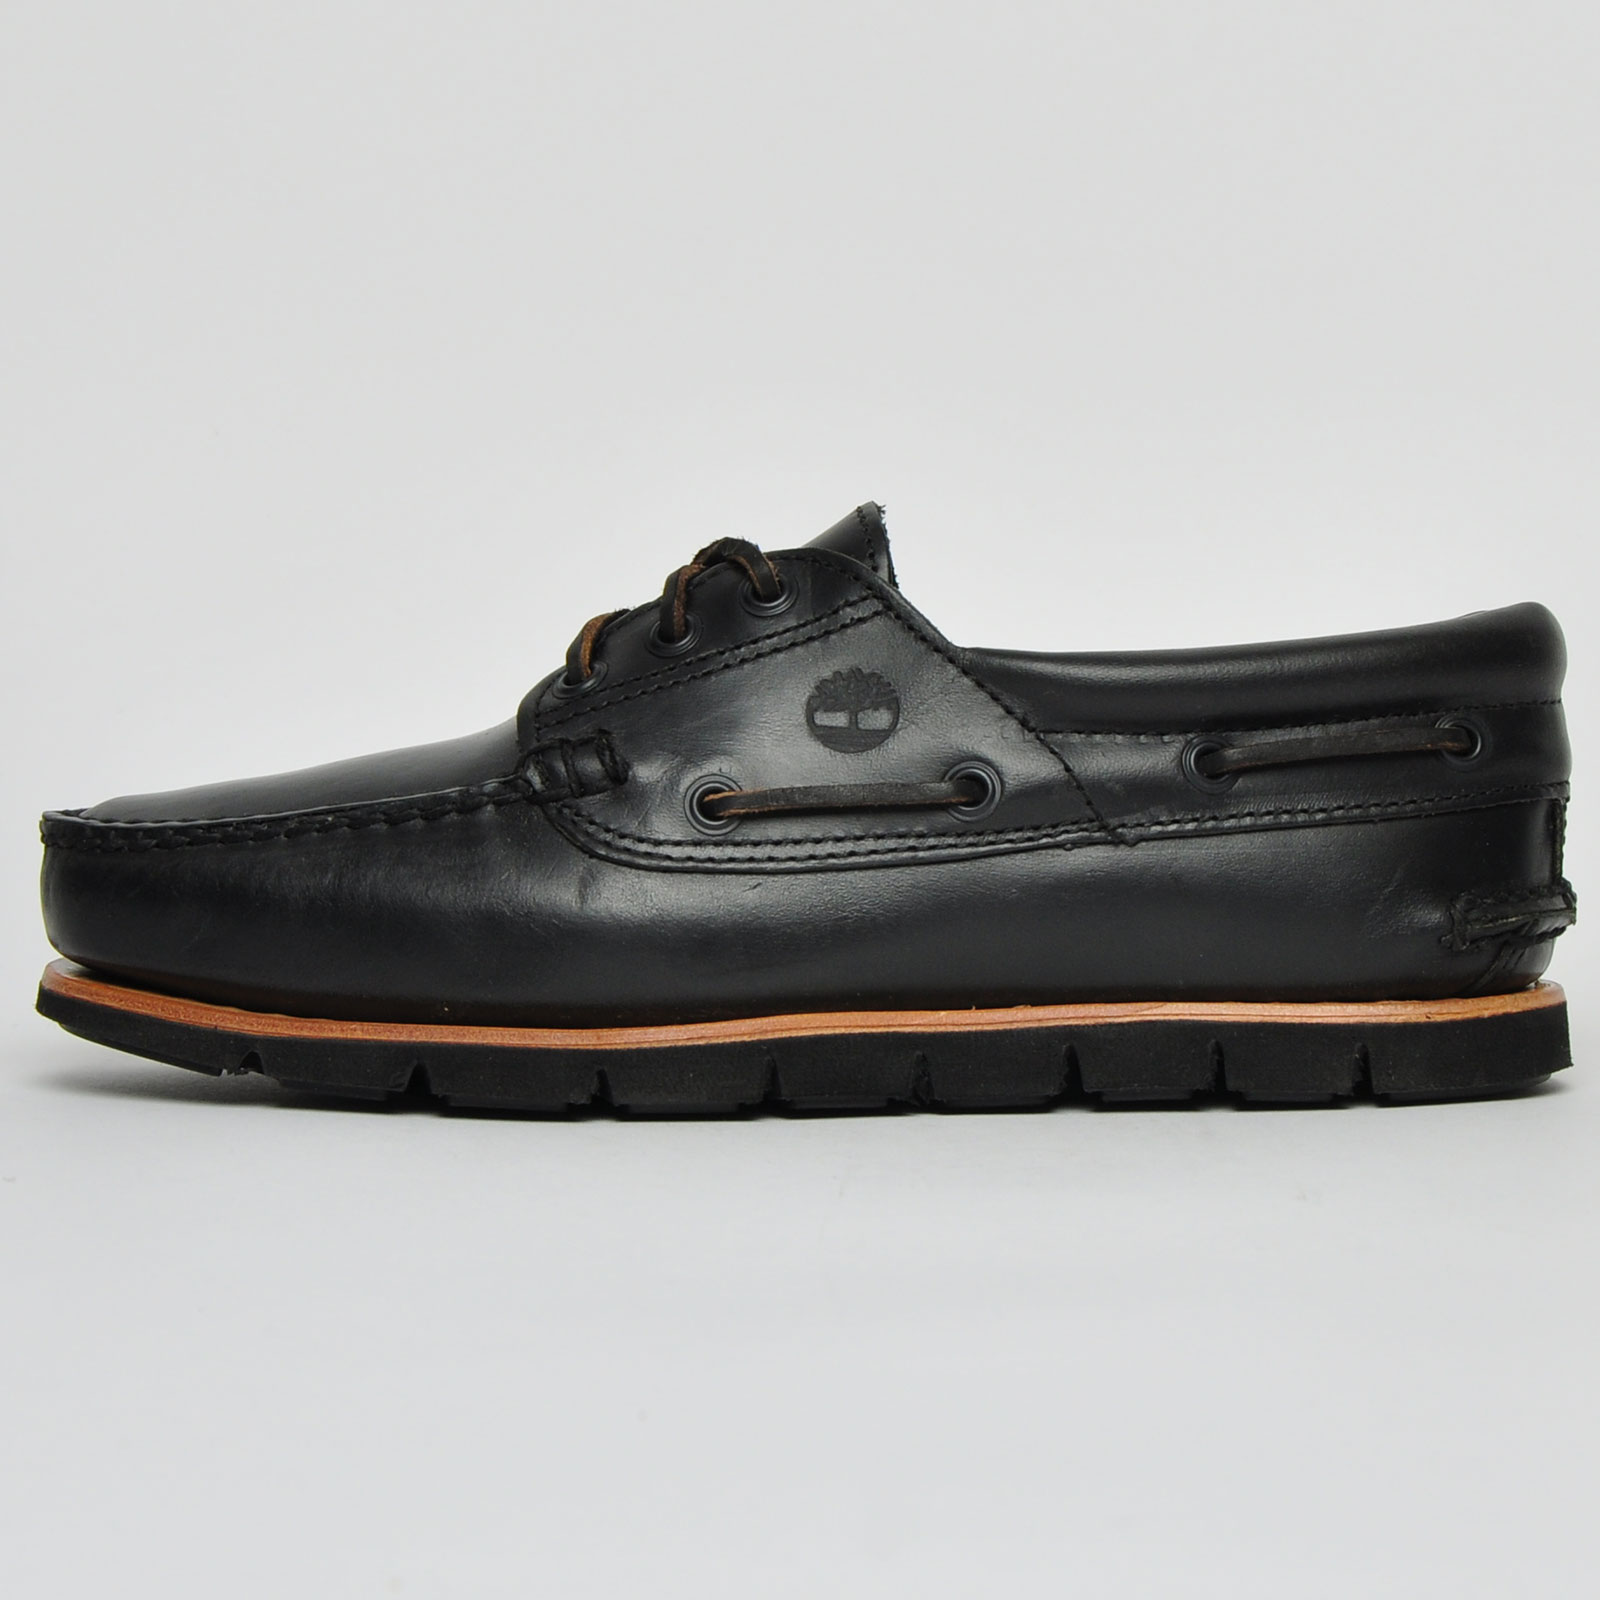 Leather Boat Deck Shoes Black